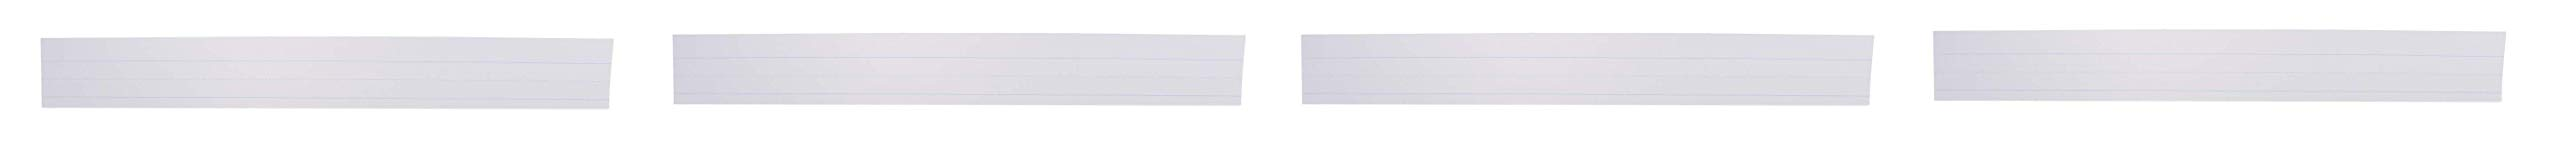 School Smart Ruled Sentence Strips, 3 x 24 Inches, White, Pack of 100 (Fоur Paсk)